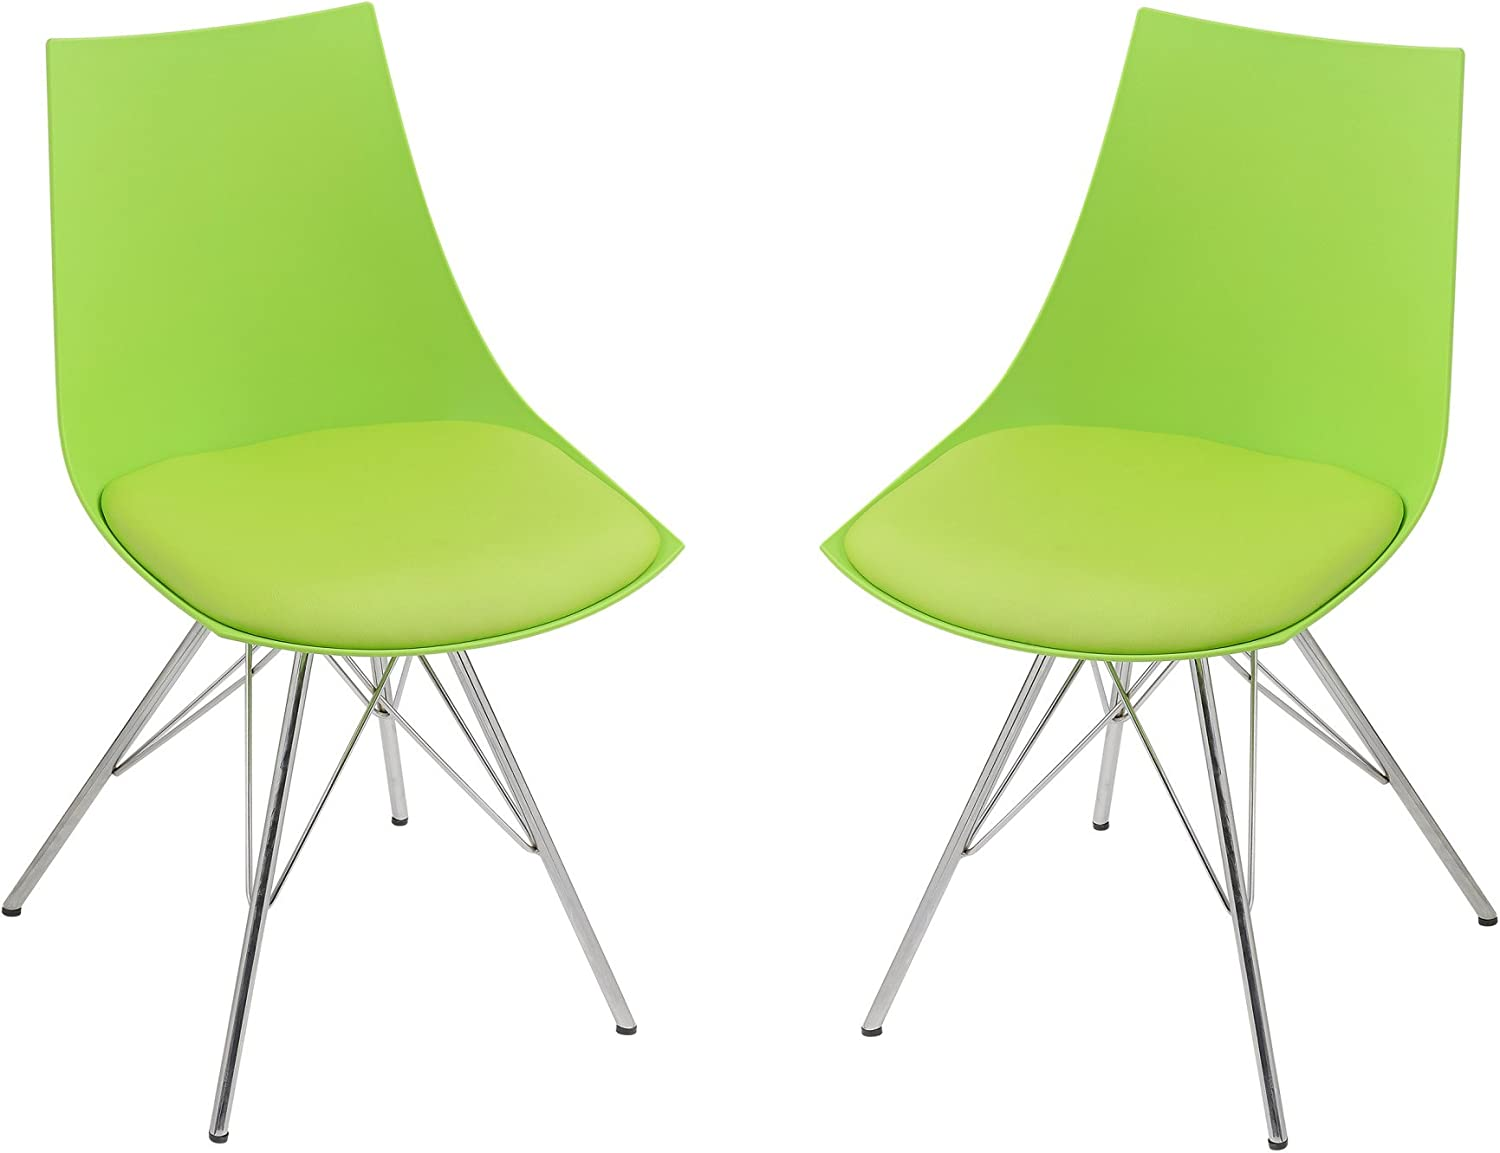 Emerald Home Audrey Green Dining Chair with Molded Plastic Shell, Cushioned Seat, And Metal Geometric Bracing, Set of Two